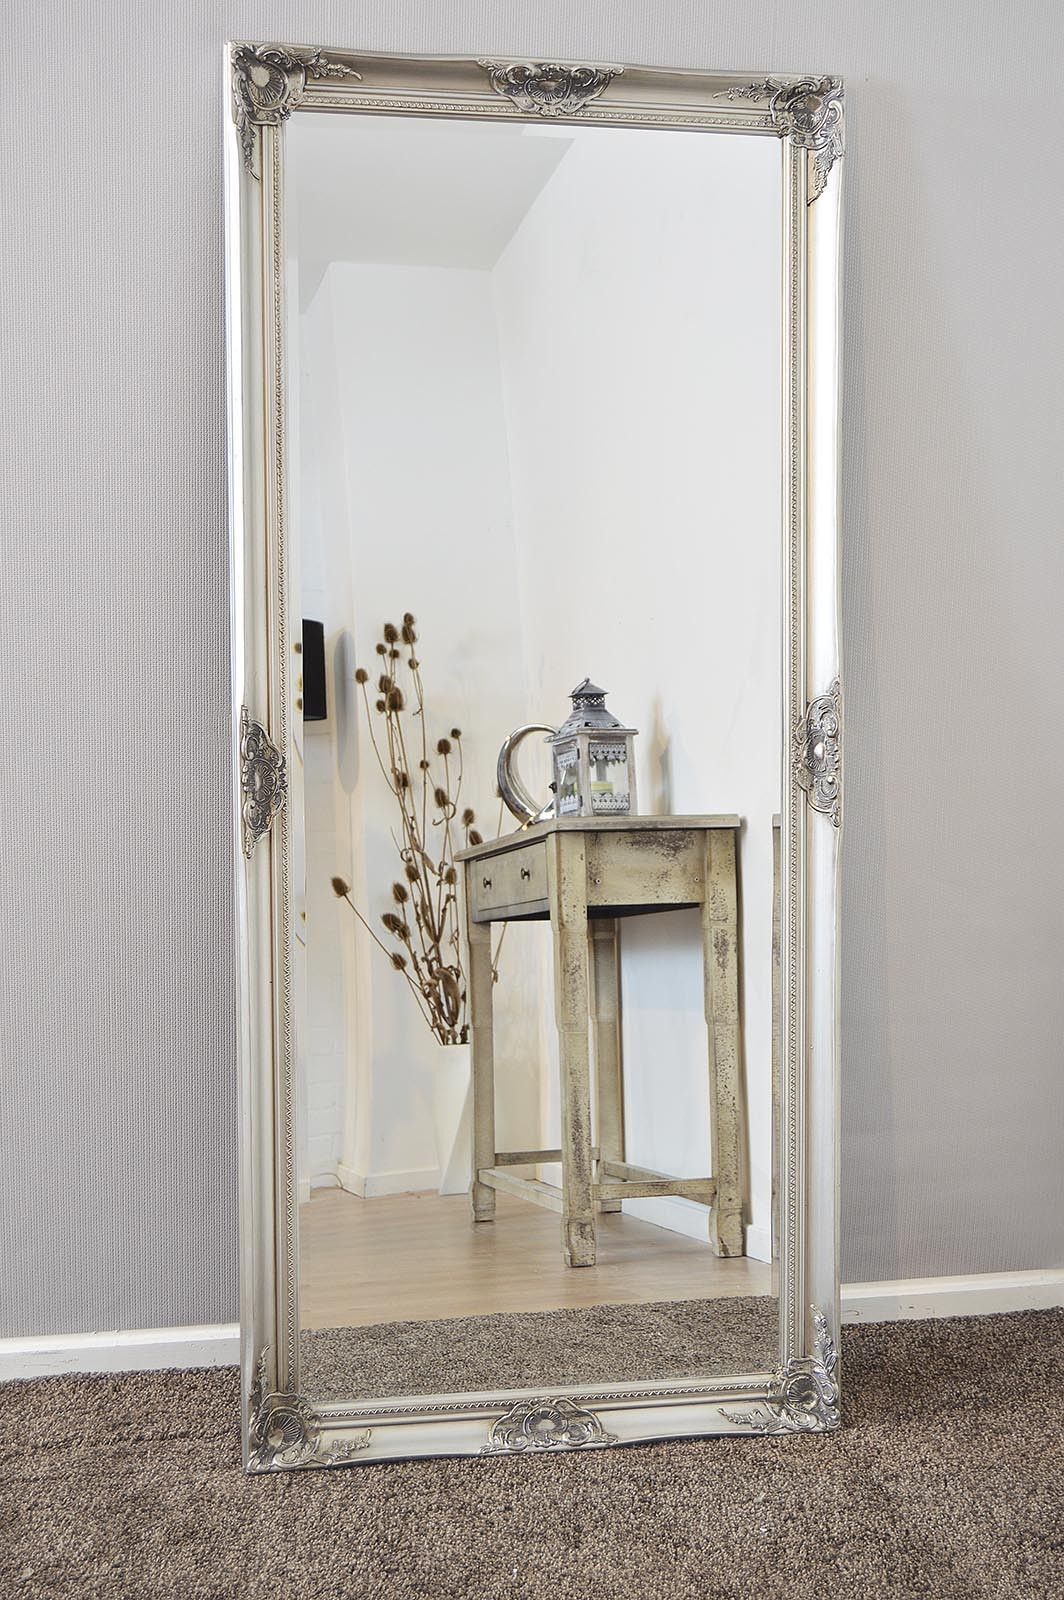 New Large Silver Decorative Shab Chic Wall Mirror 5ft3 X 2ft5 Regarding Silver Bevelled Mirror (View 14 of 15)